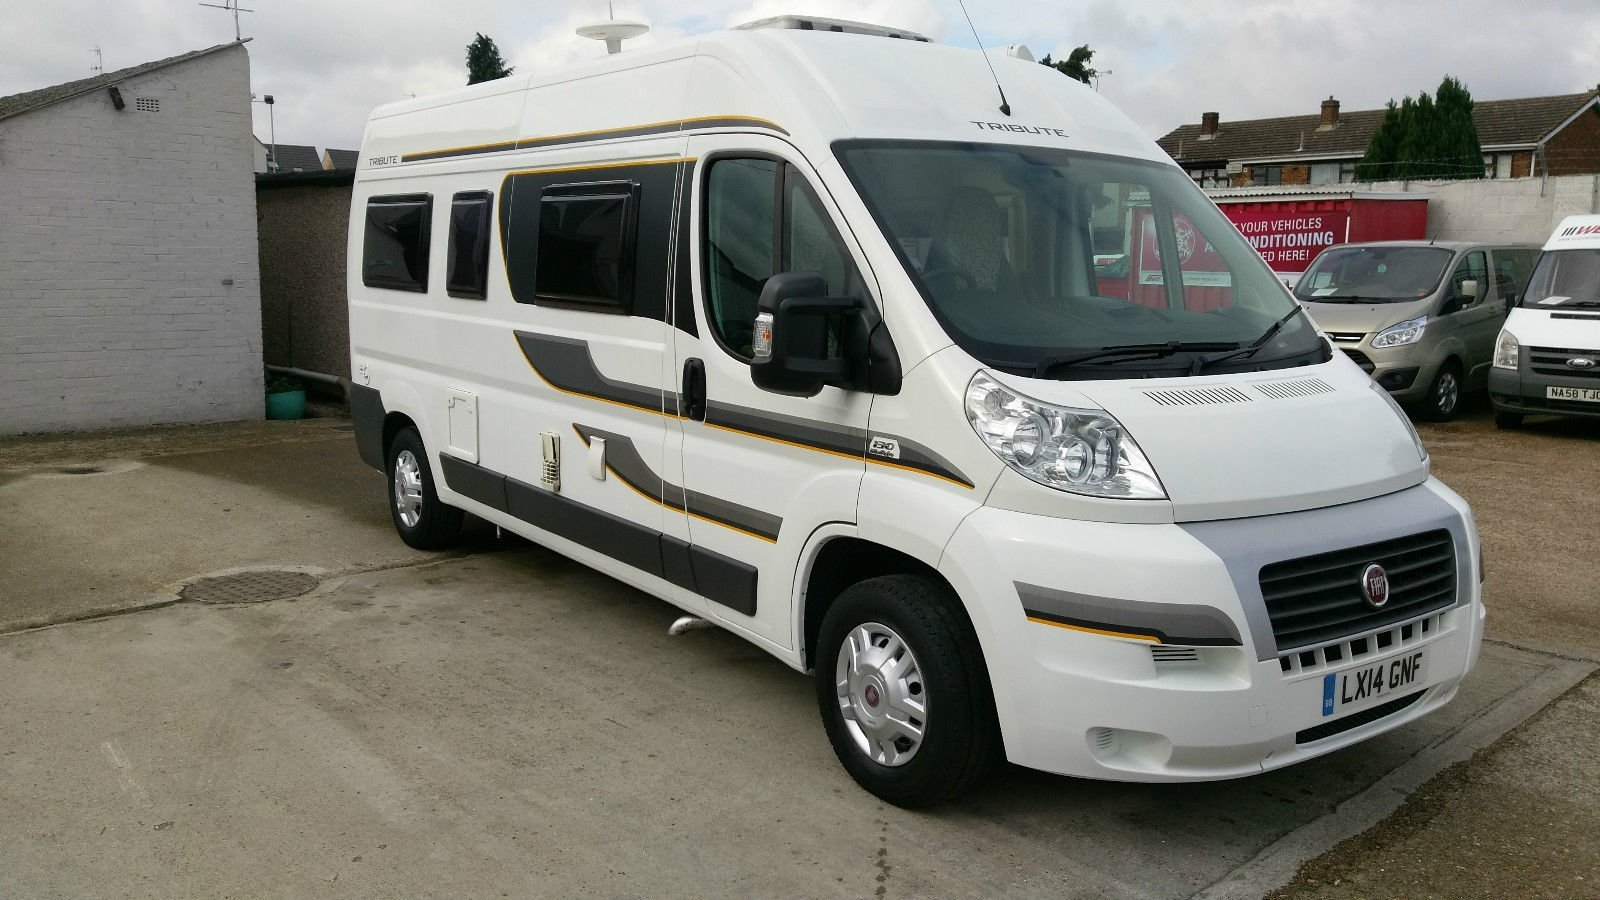 Auto-trail Tribute 670 2 berth used motor home camper van for sale at Wests Motorhome Hire UK